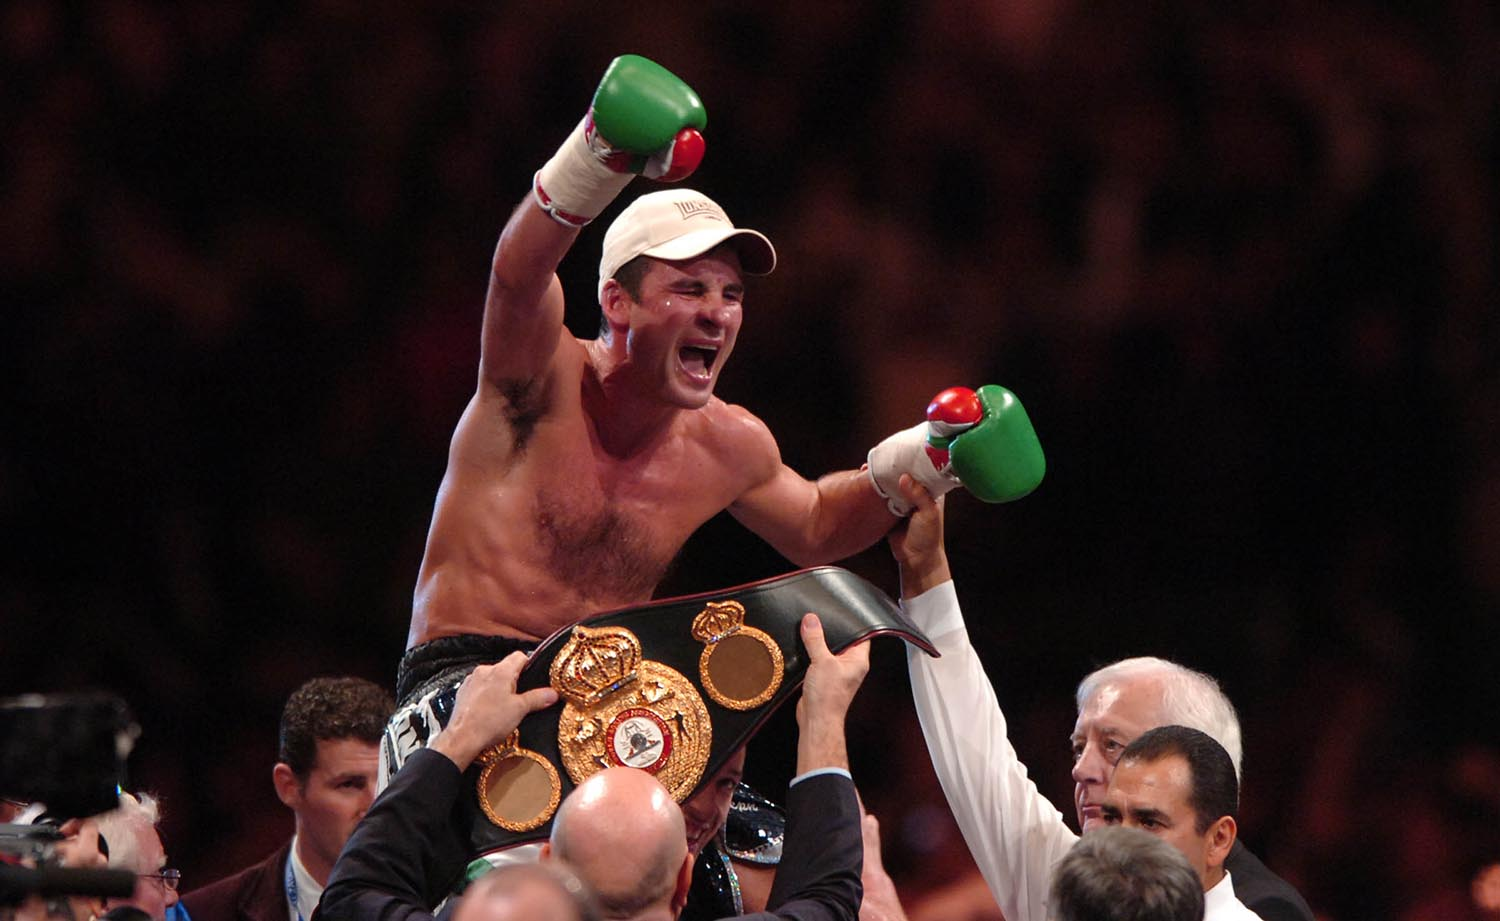 Joe Calzaghe celebrates victory over Mikkel Kessler